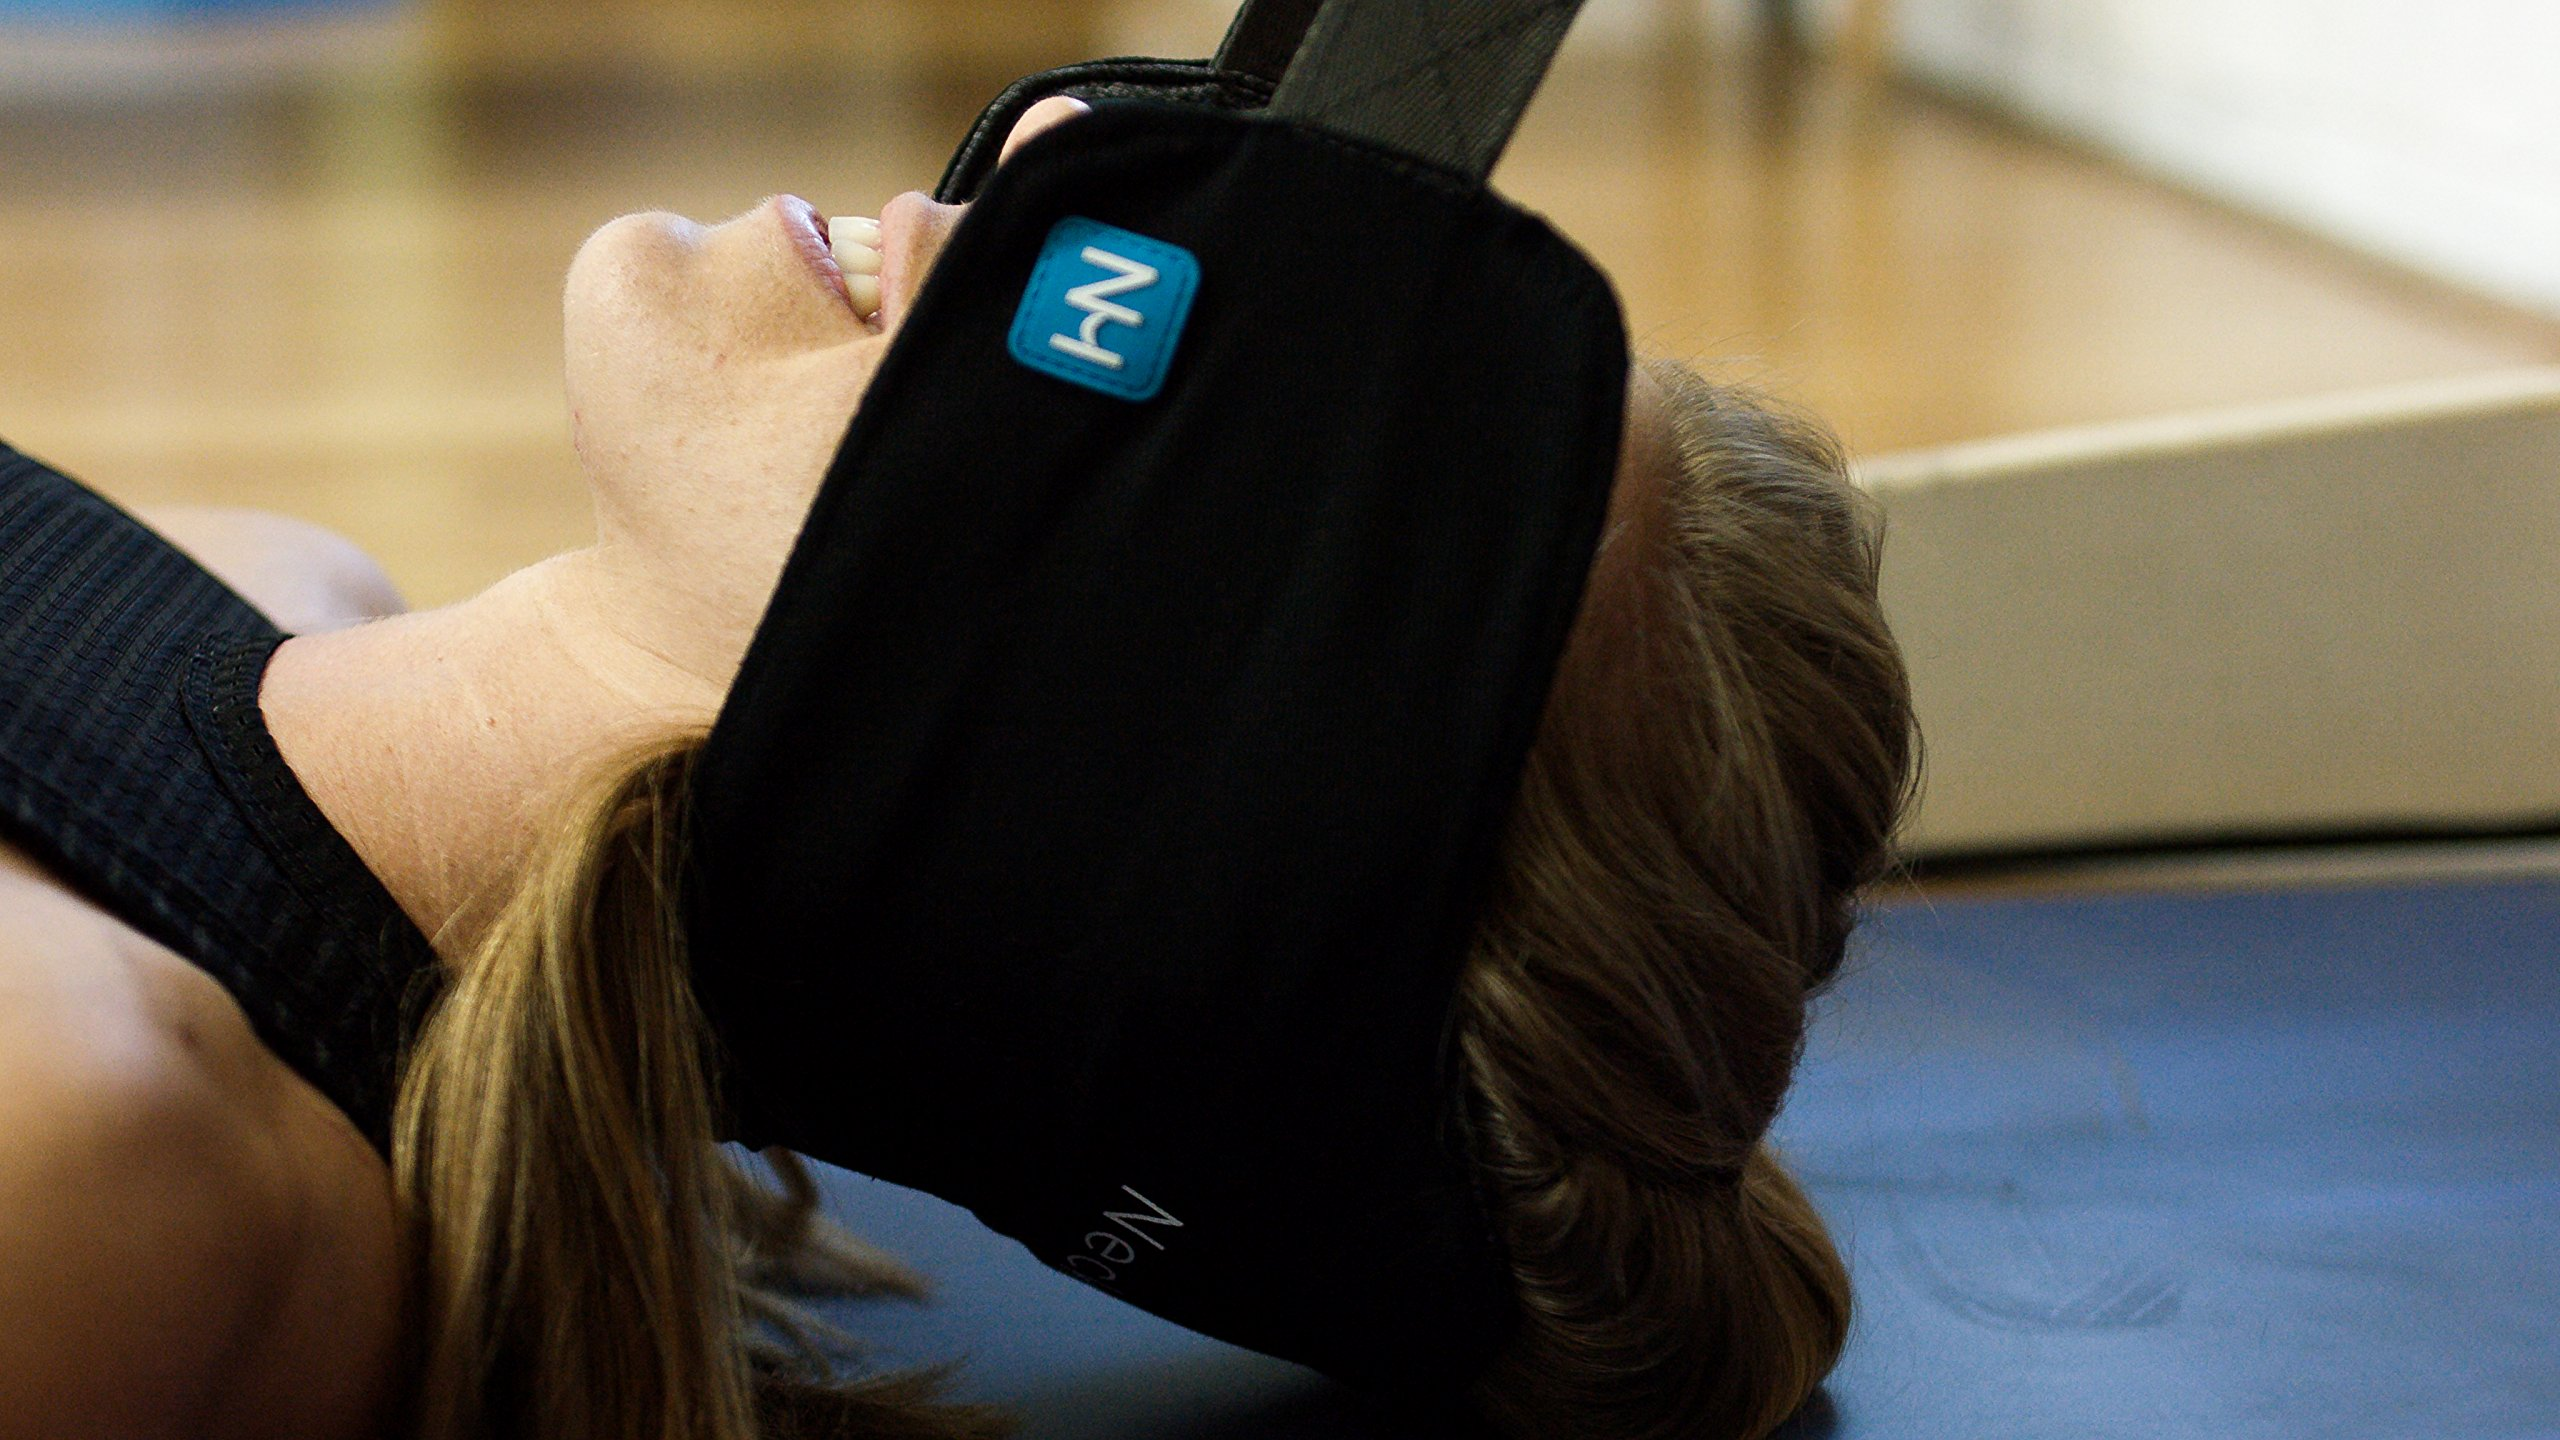 The Neck Hammock 2.0 - The Original Portable Cervical Traction and Relaxation Device. Easily Attach to Any Door or Railing for Chronic Neck Pain Relief in 10 Minutes or Less by The Neck Hammock (Image #4)